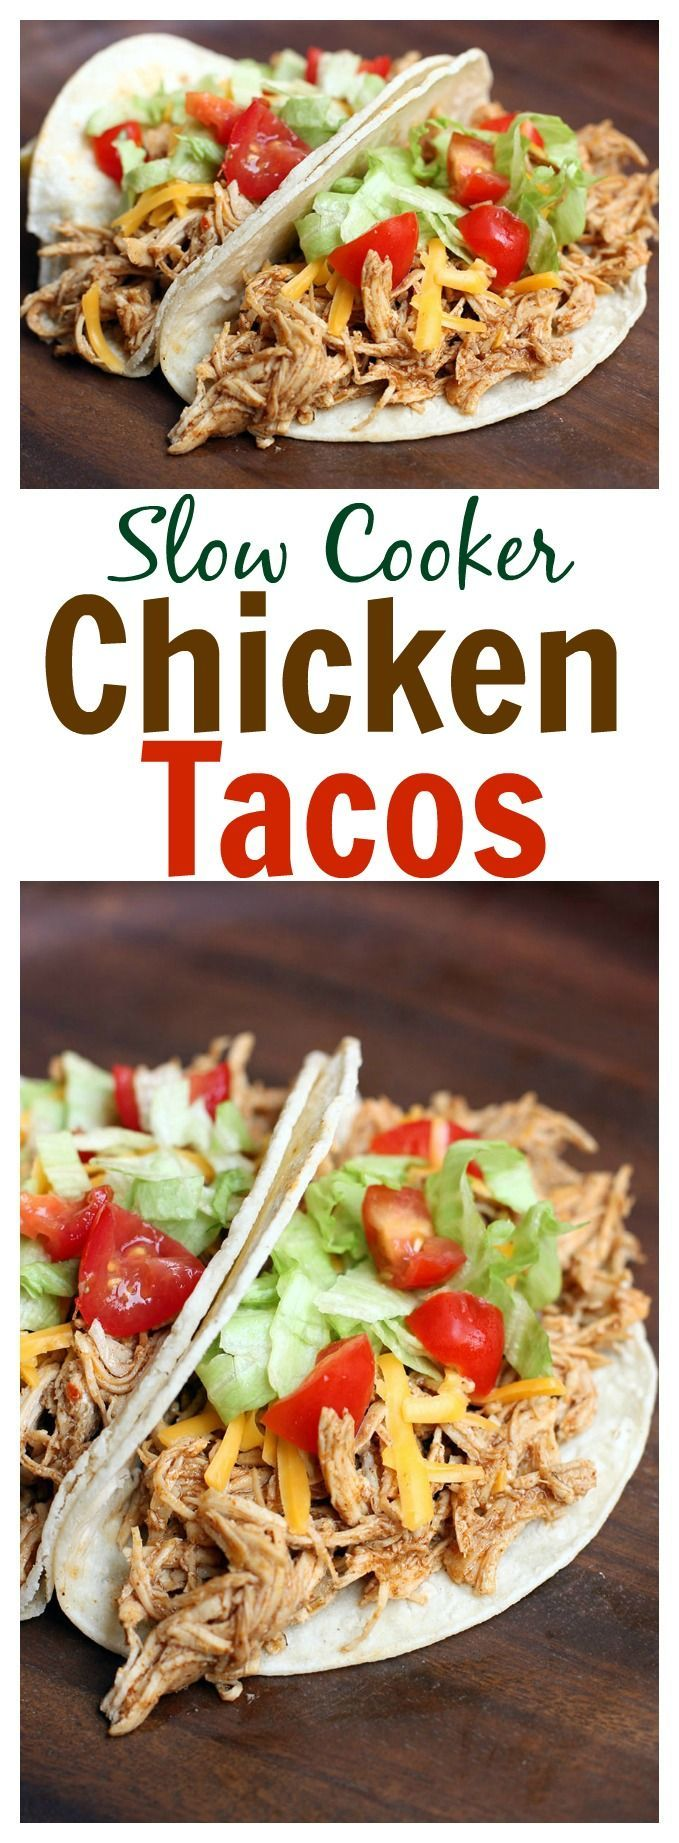 The EASIEST and tastiest dinner! Slow Cooker Chicken Tacos are one of our go-to weeknight meals! On MyRecipeMagic.com